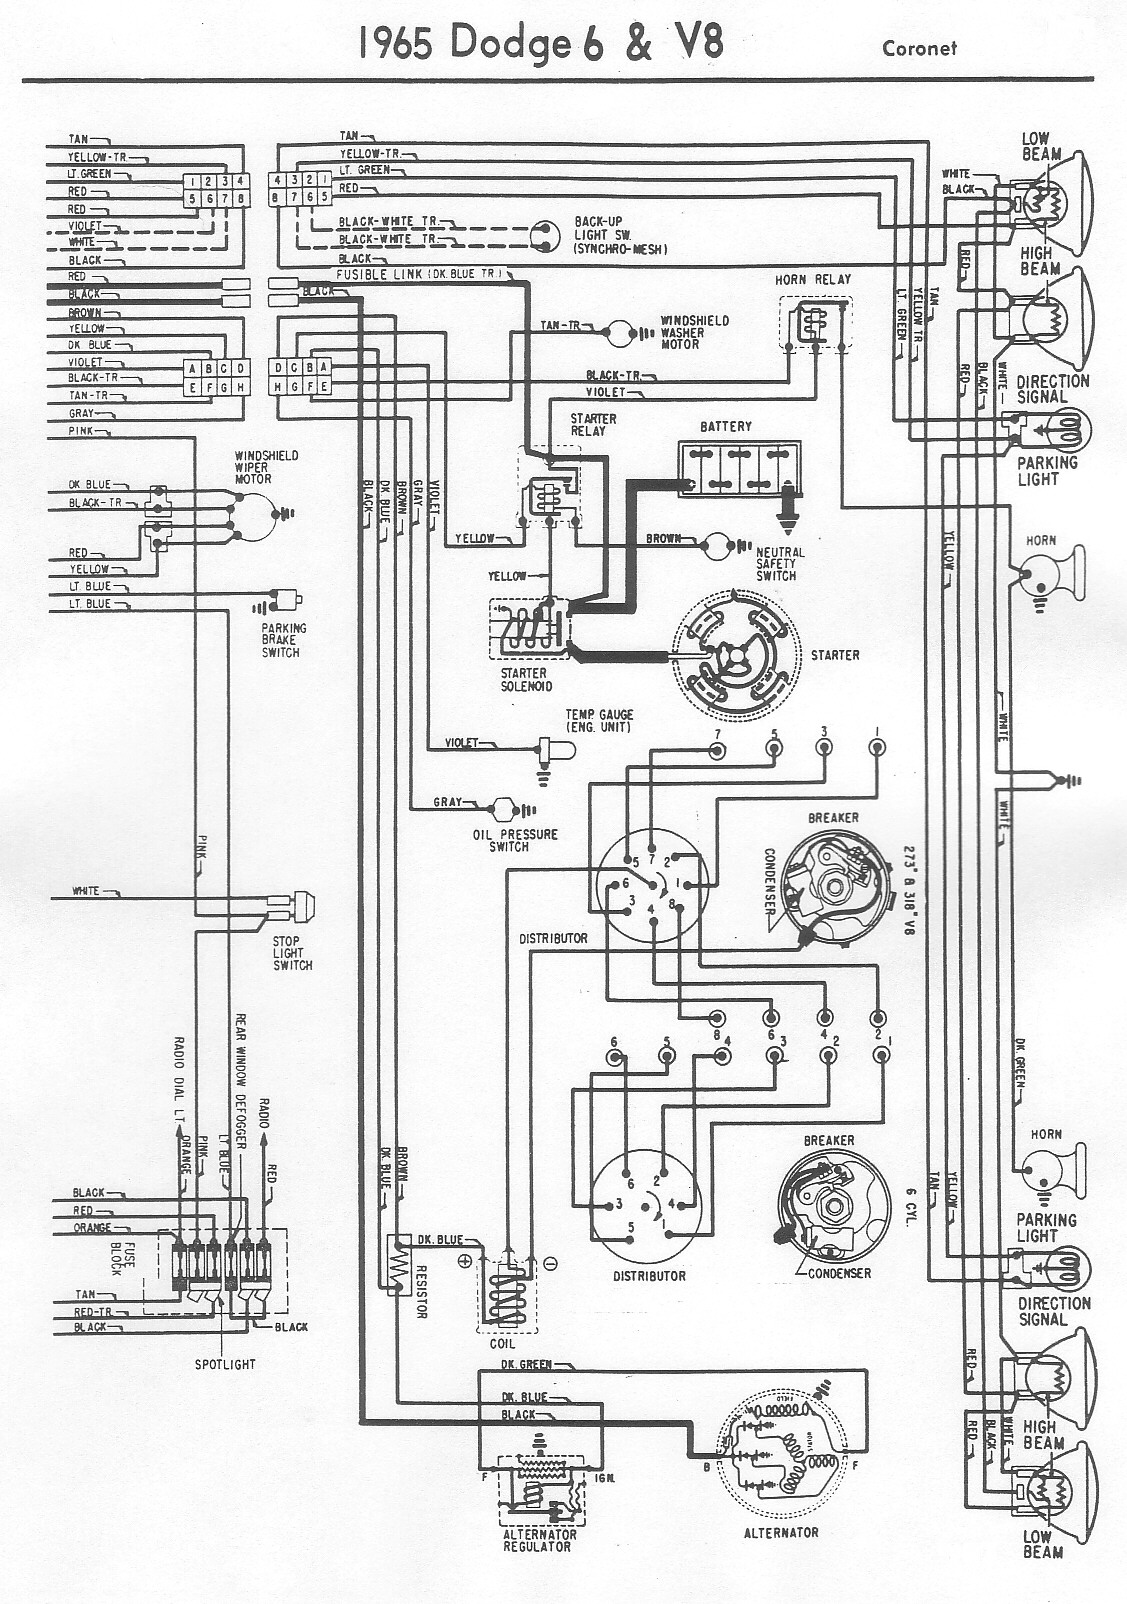 1964 Dodge Coronet Wiring Diagram - Complete wiring diagramvetreriaduemme.it